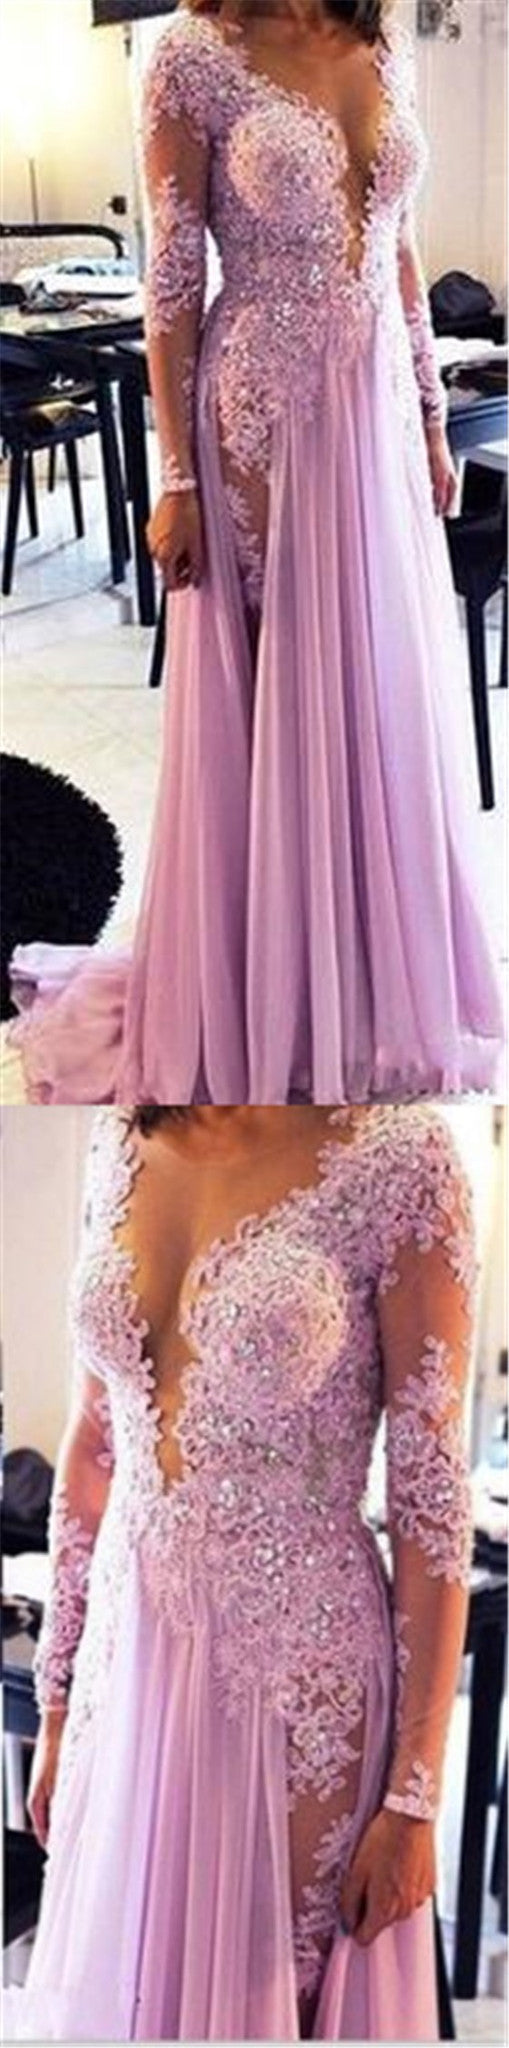 Long Sleeves See Through Deep V Neck Split Long Lace Prom Dresses, BG51116 - Bubble Gown